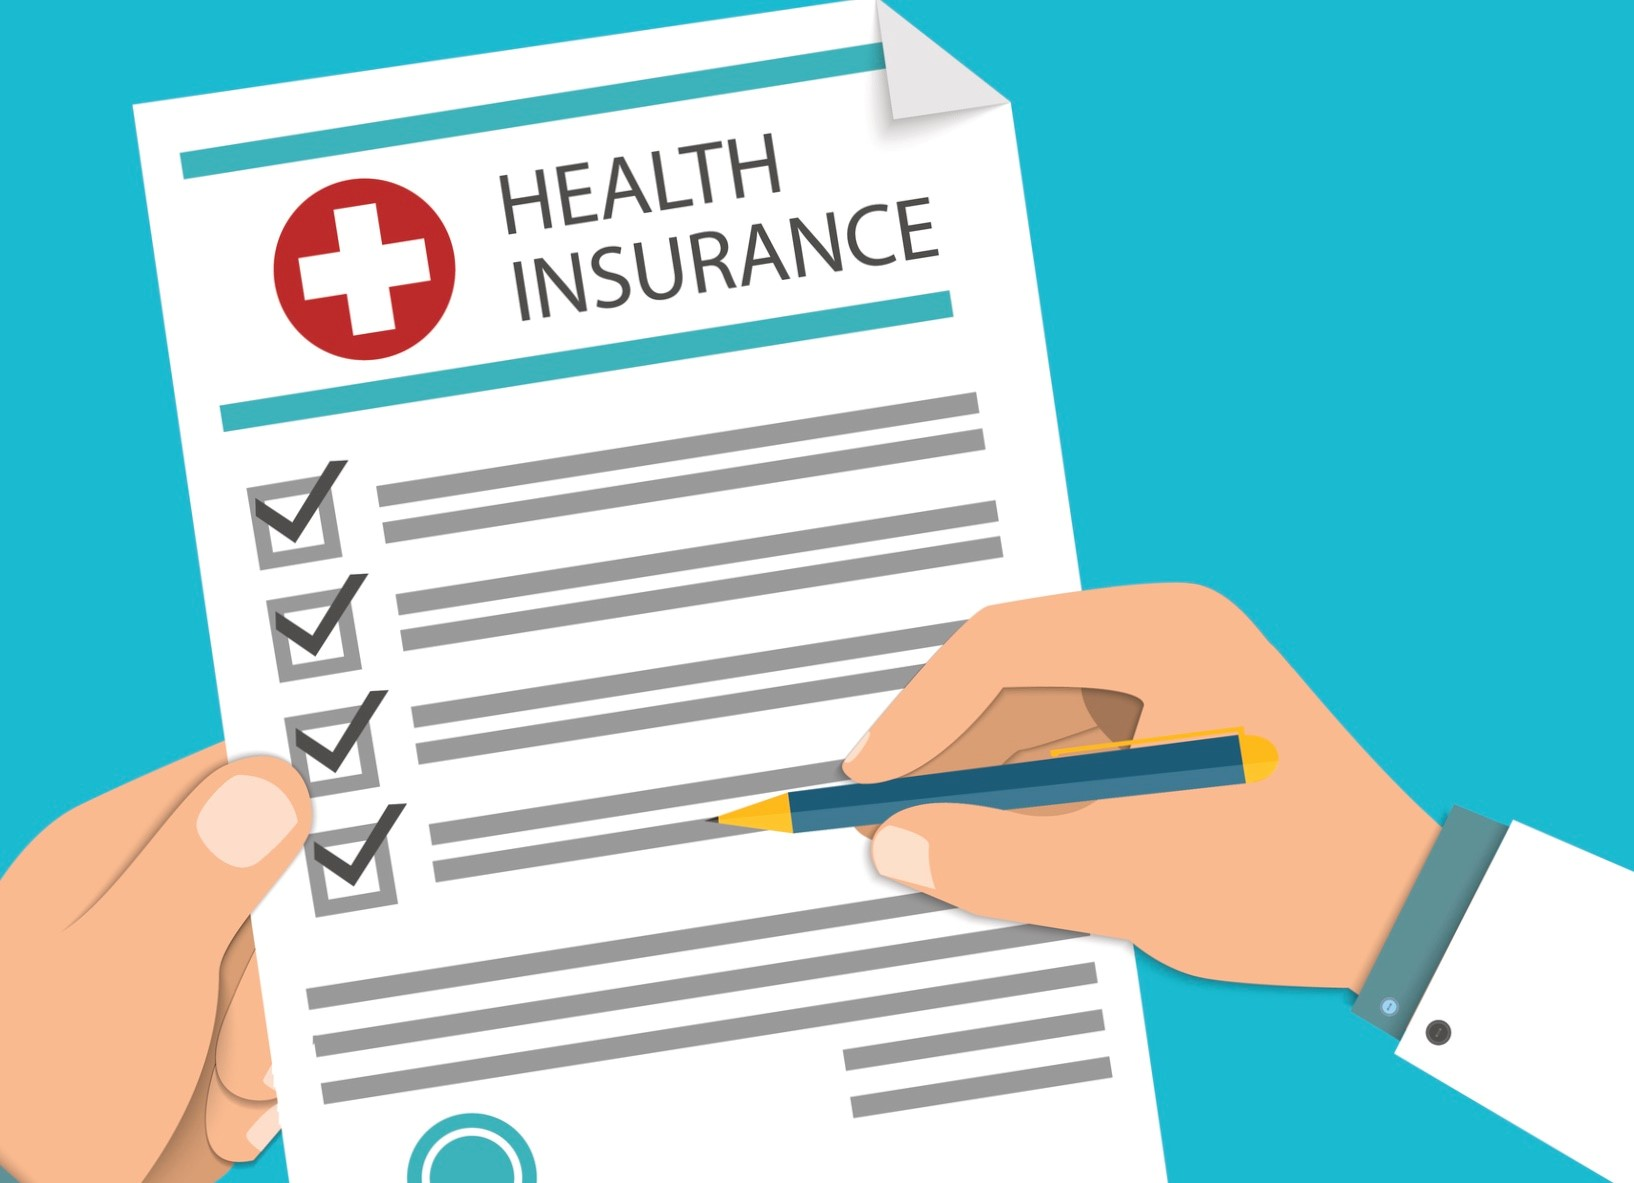 How to Enroll for Health Insurance, After the Deadline